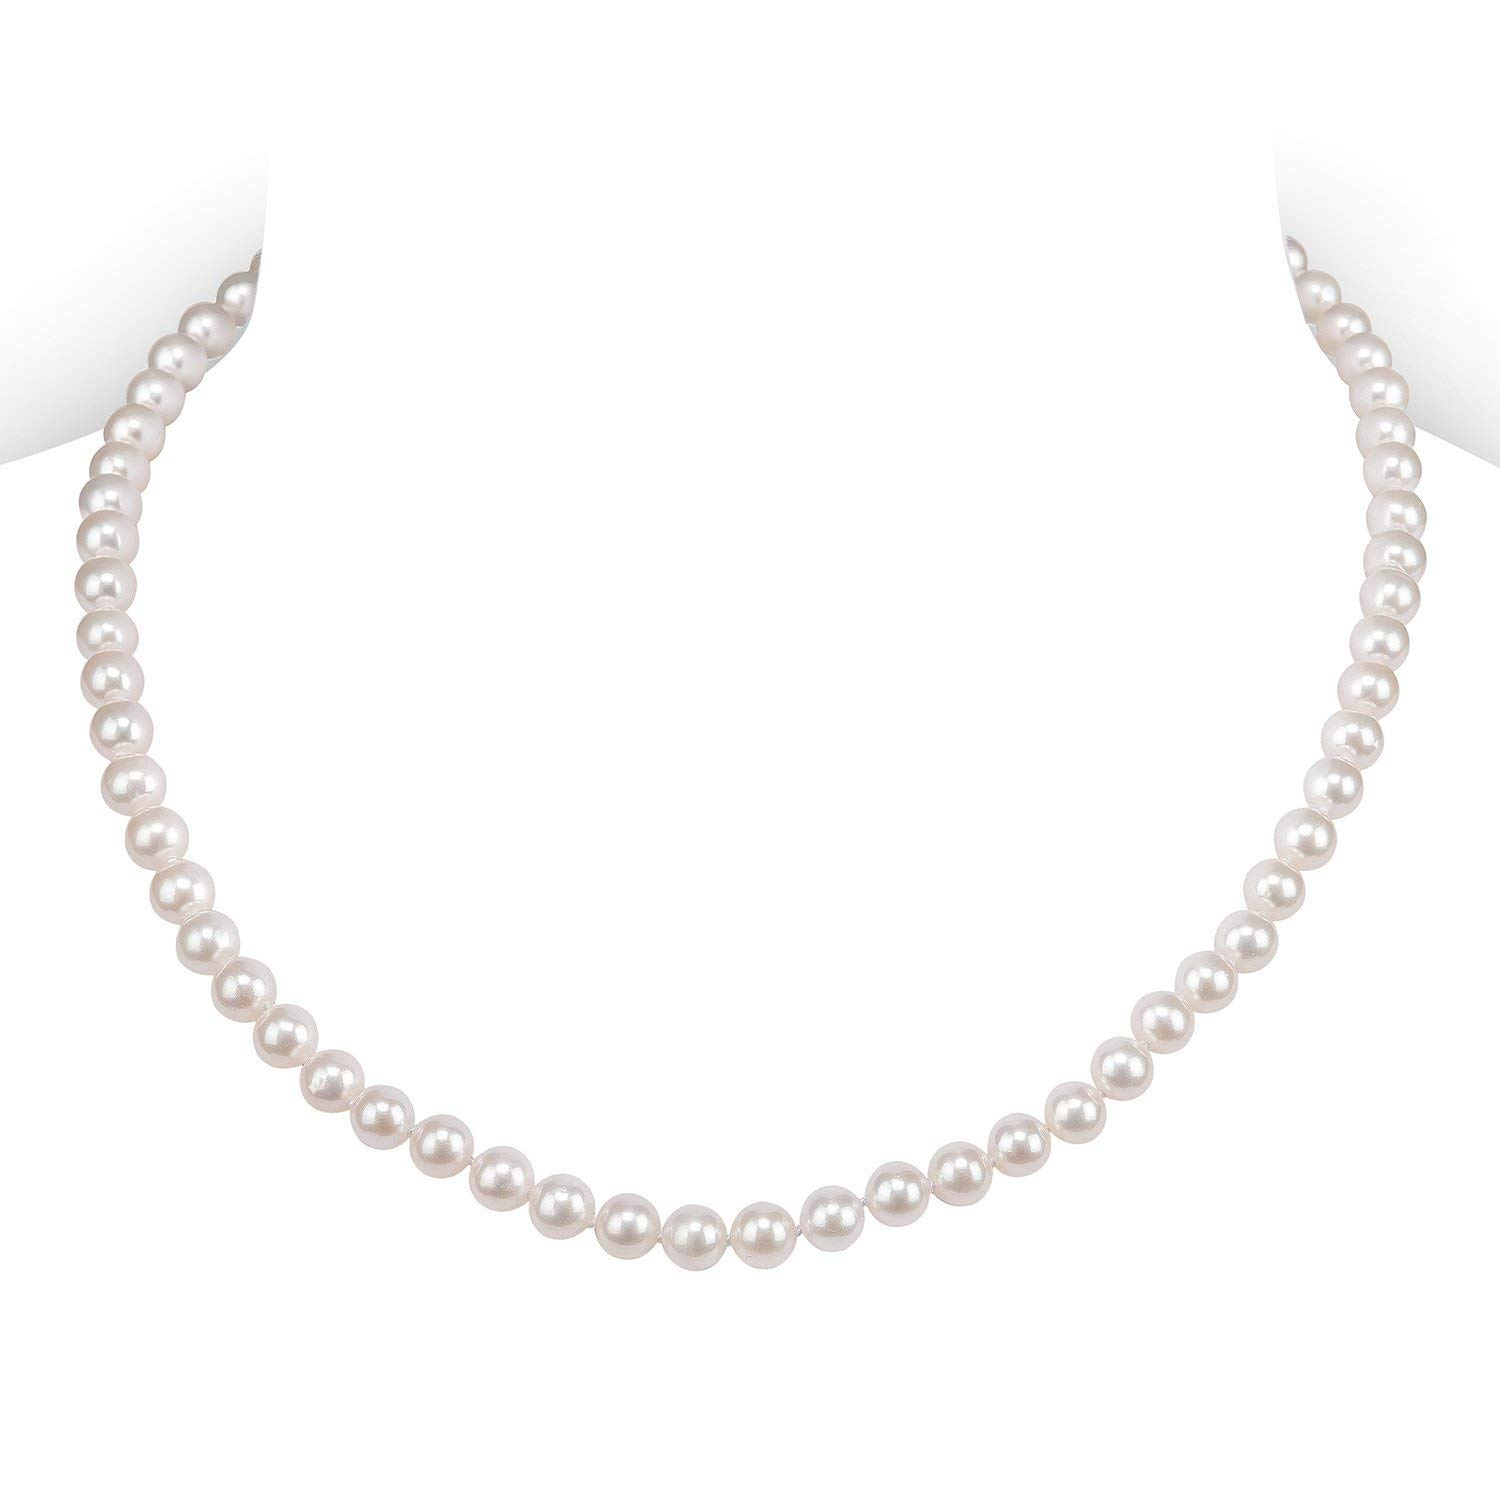 PAVOI Sterling Silver White Freshwater Cultured Pearl Necklace (16, 5mm) by PAVOI